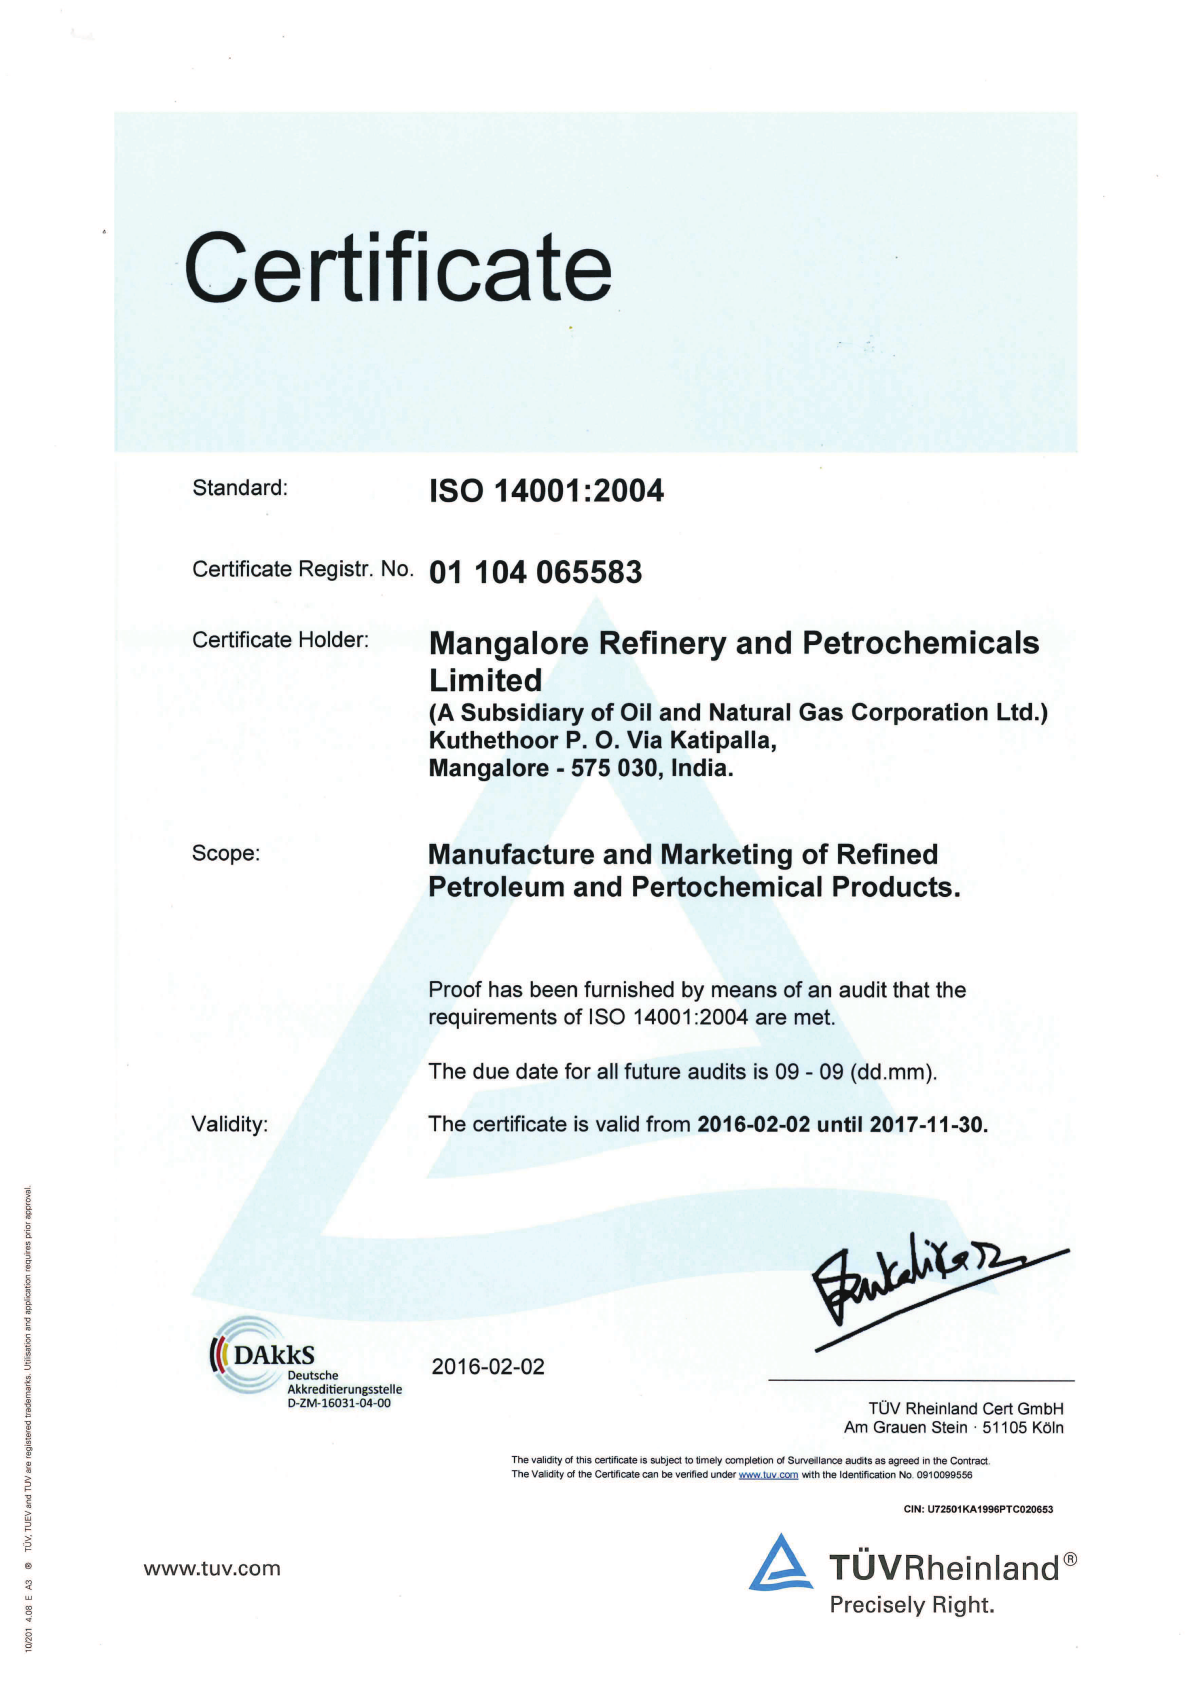 ISO 14001 | Mangalore Refinery and Petrochemicals Limited